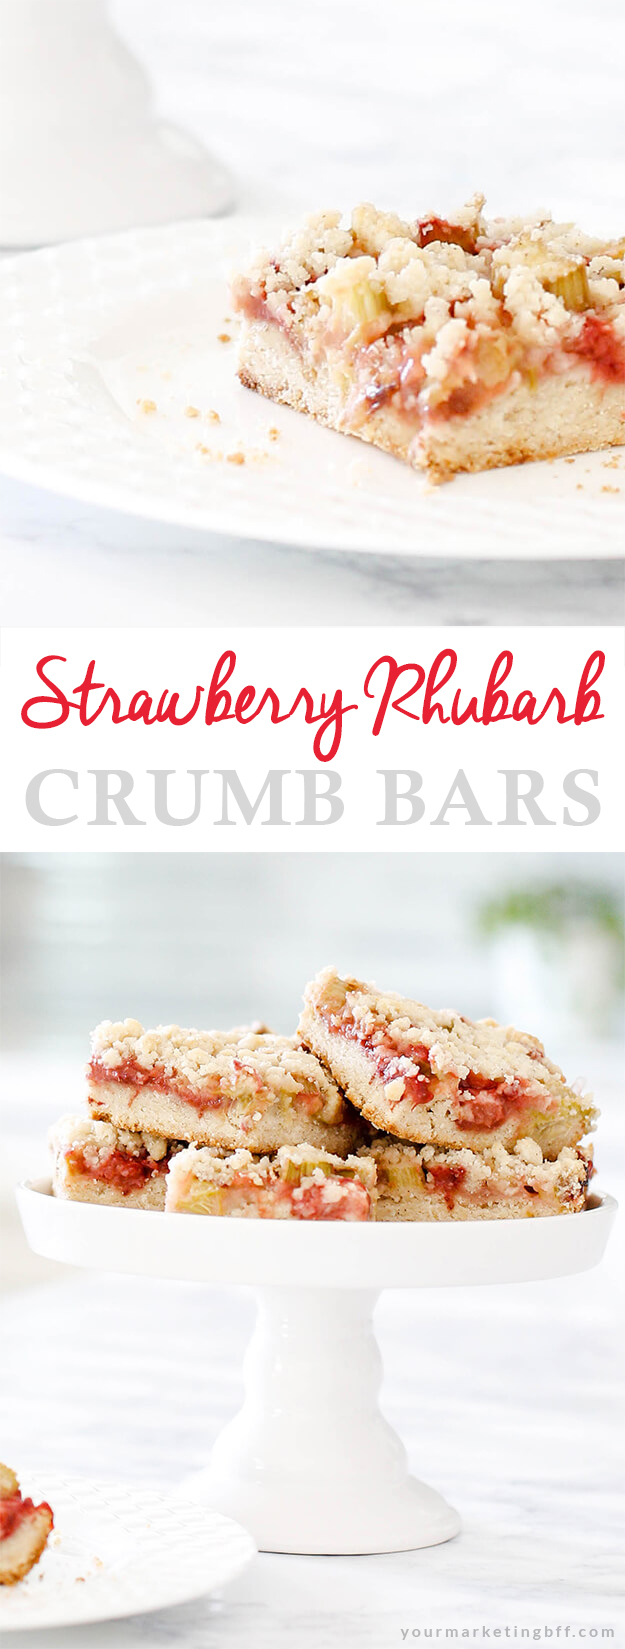 Strawberry Rhubarb Crumb Bars Recipe